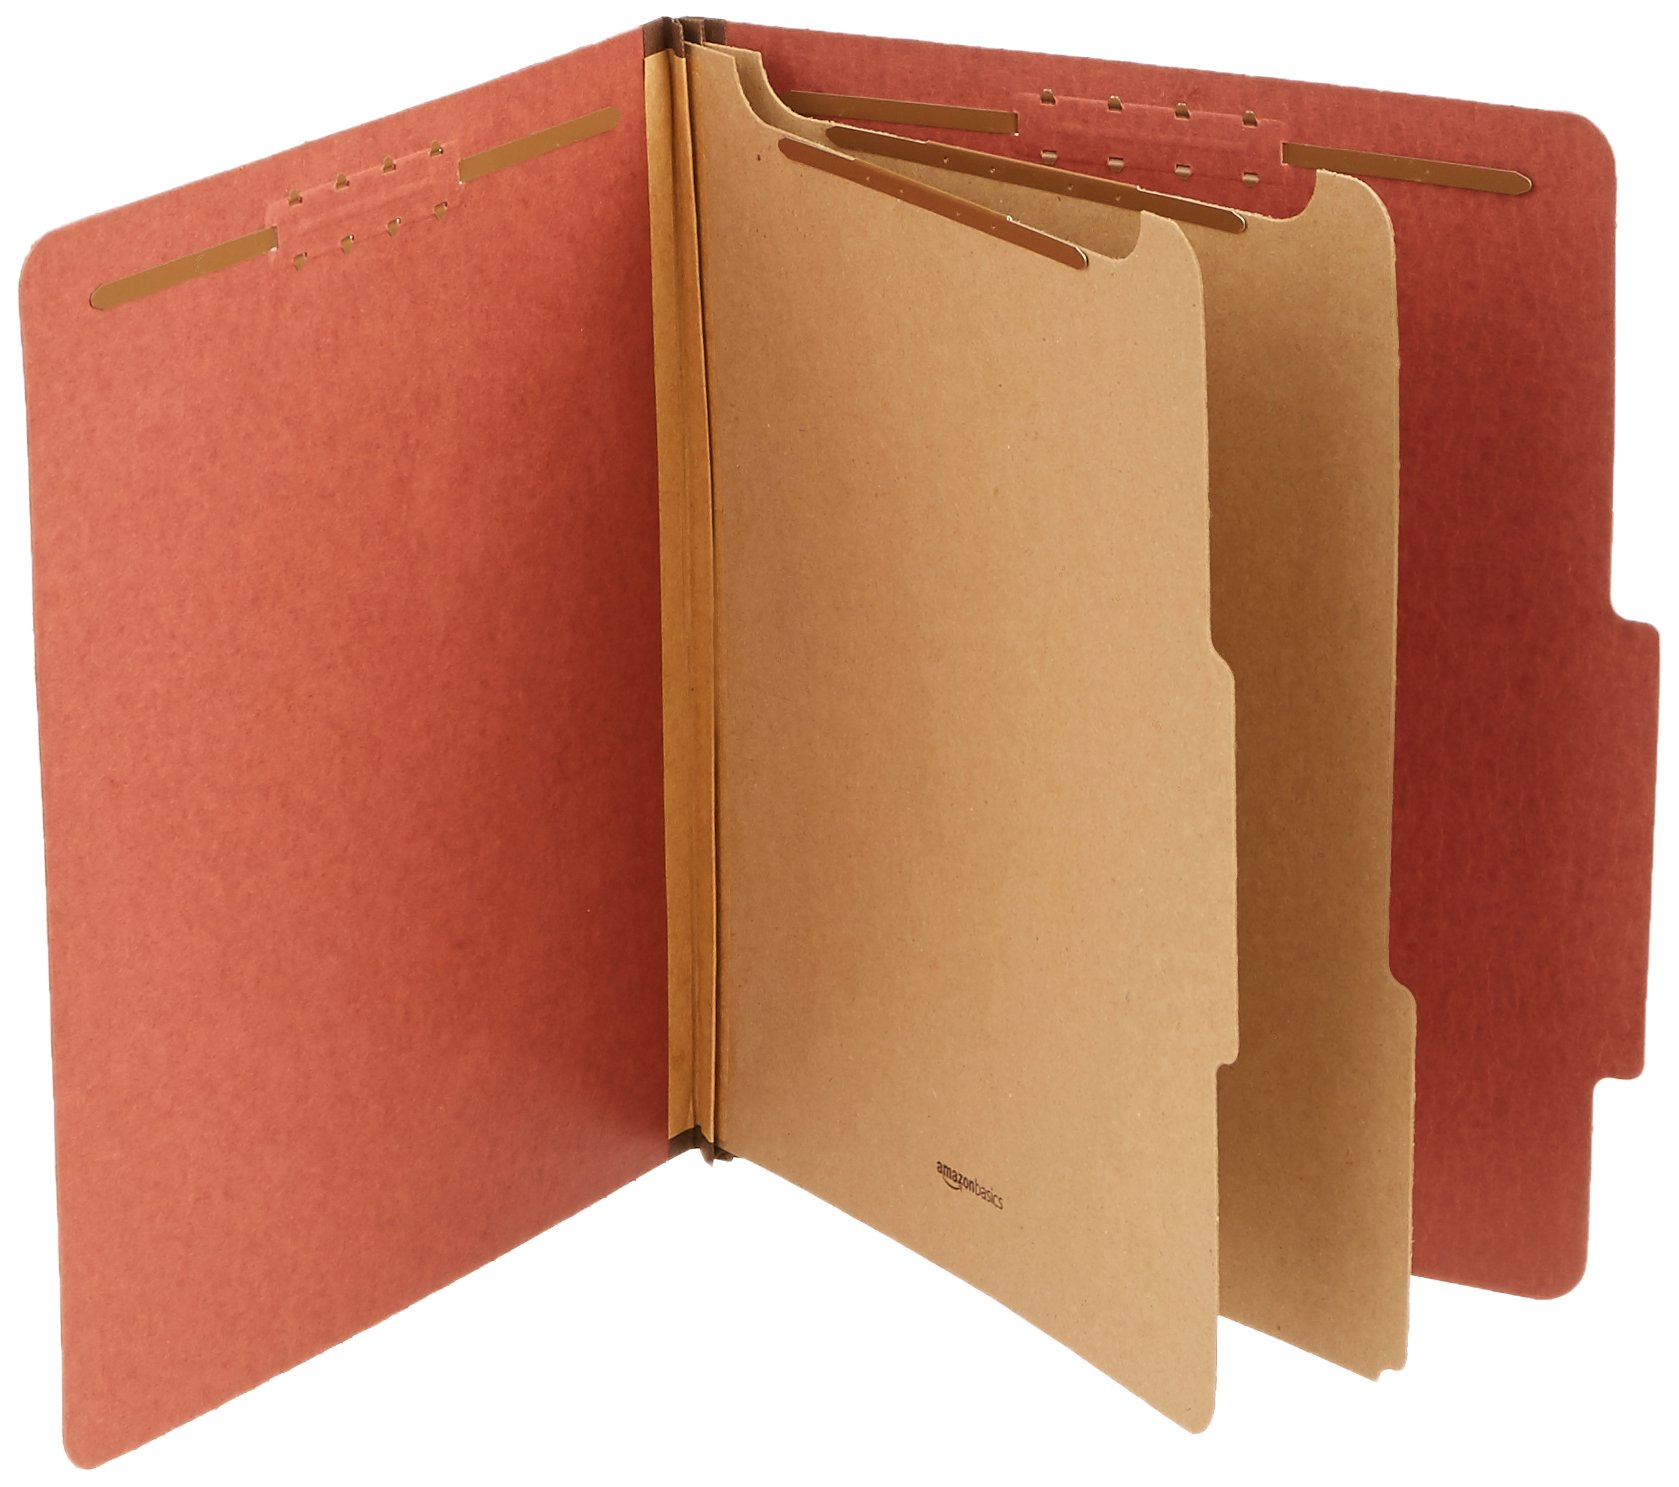 AmazonBasics Pressboard Classification File Folder with Fasteners, 2 Dividers, 2 Inch Expansion, Letter Size, Red, 10-Pack by AmazonBasics